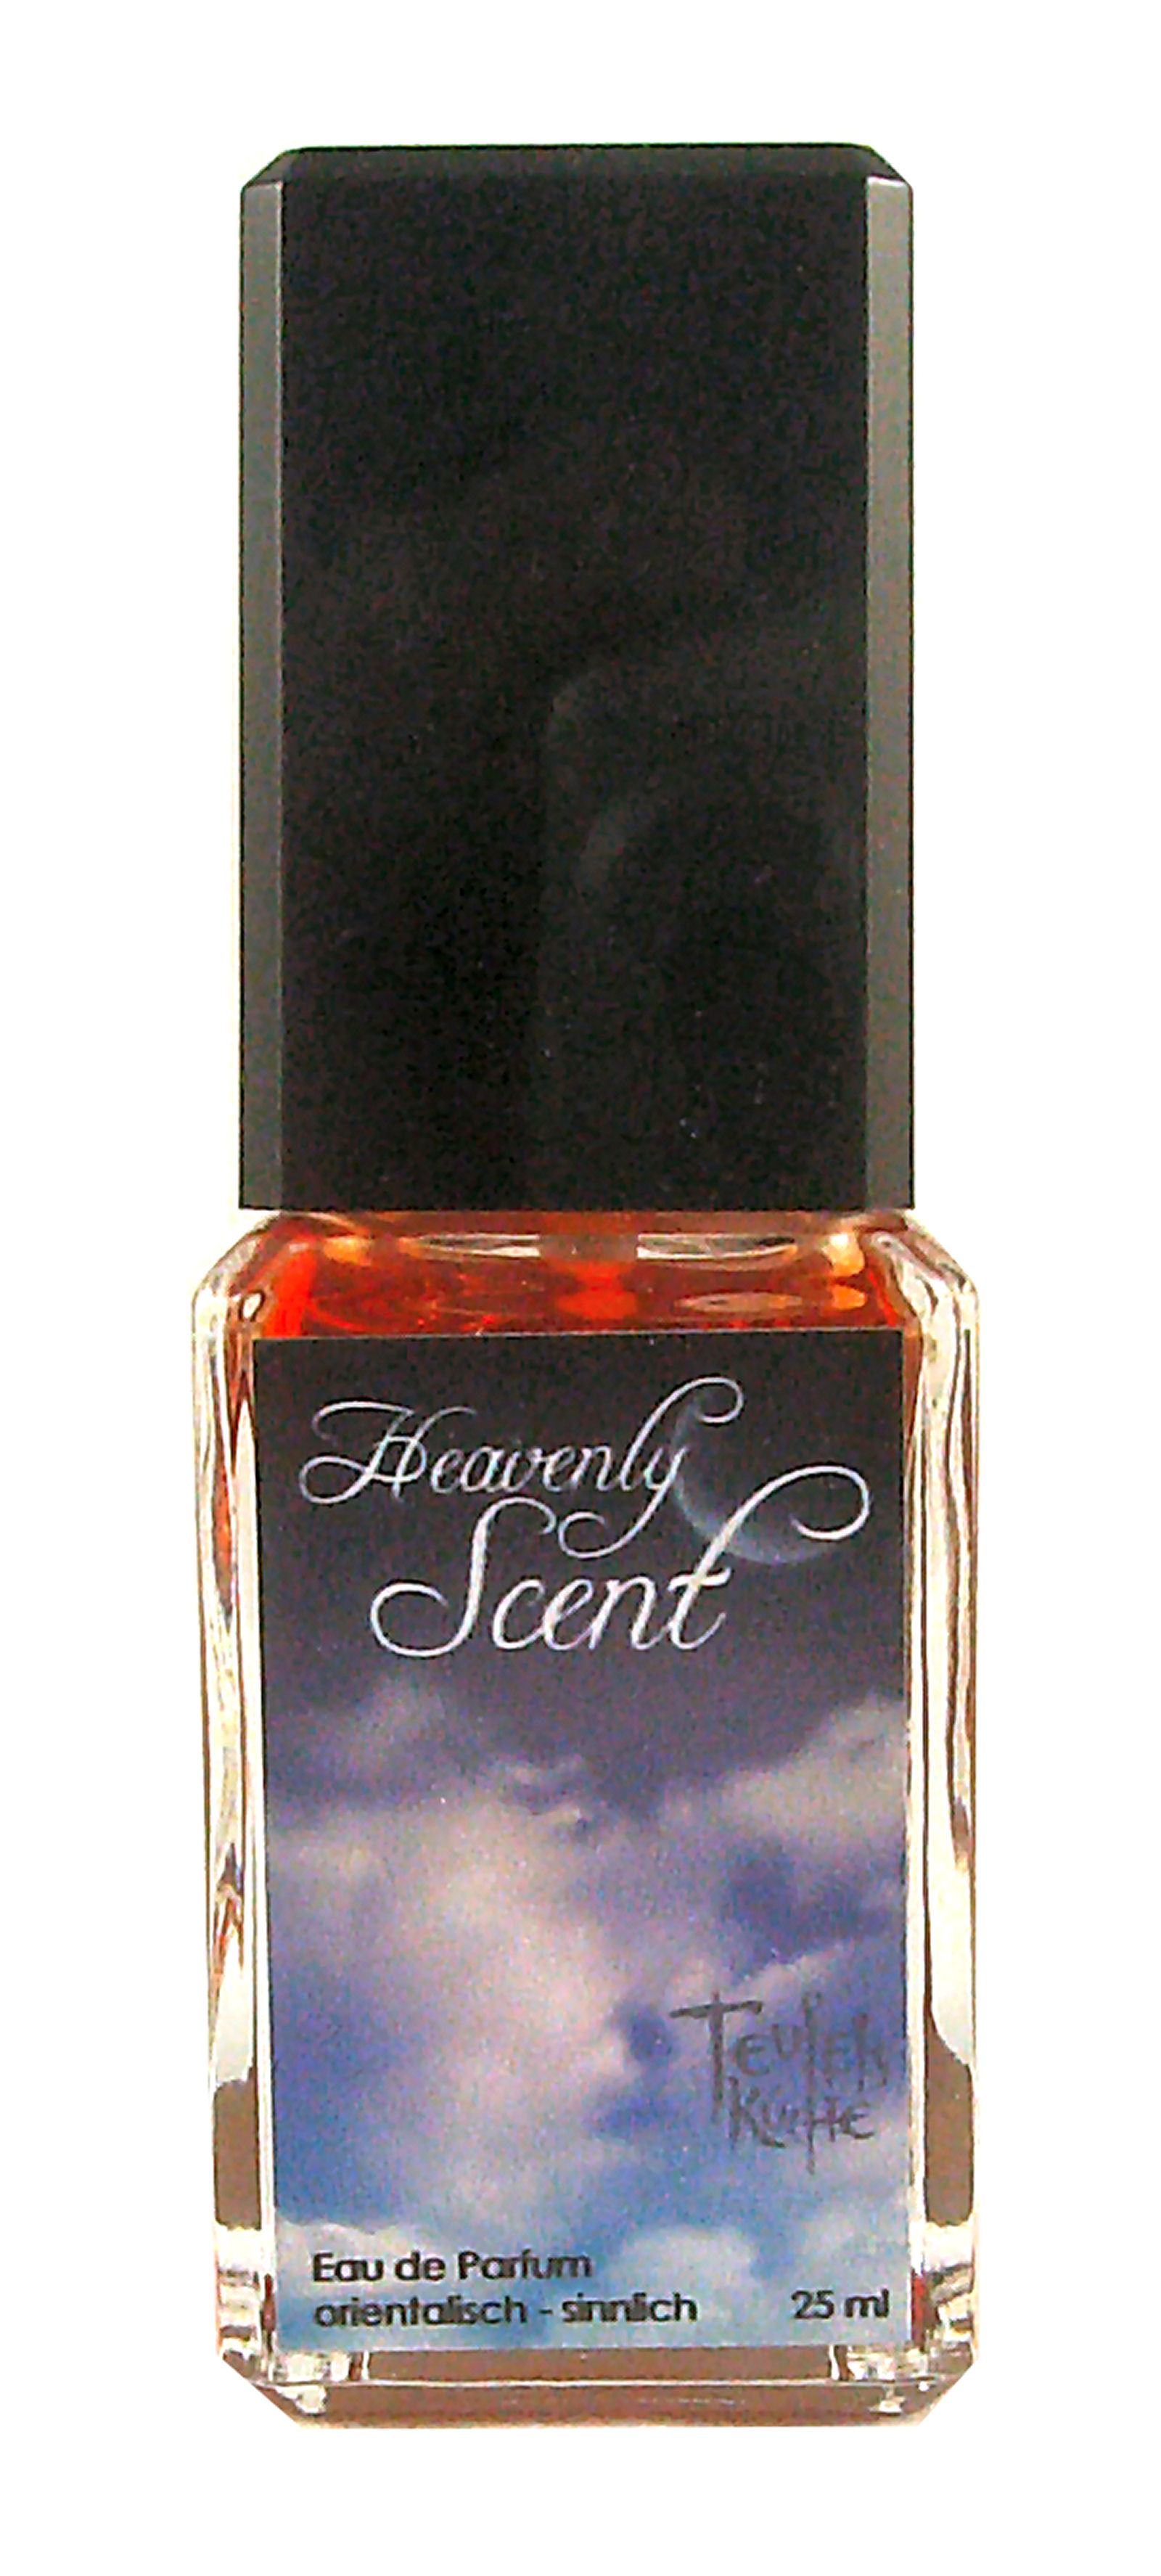 Heavenly Scent, 25ml Eau de Parfum